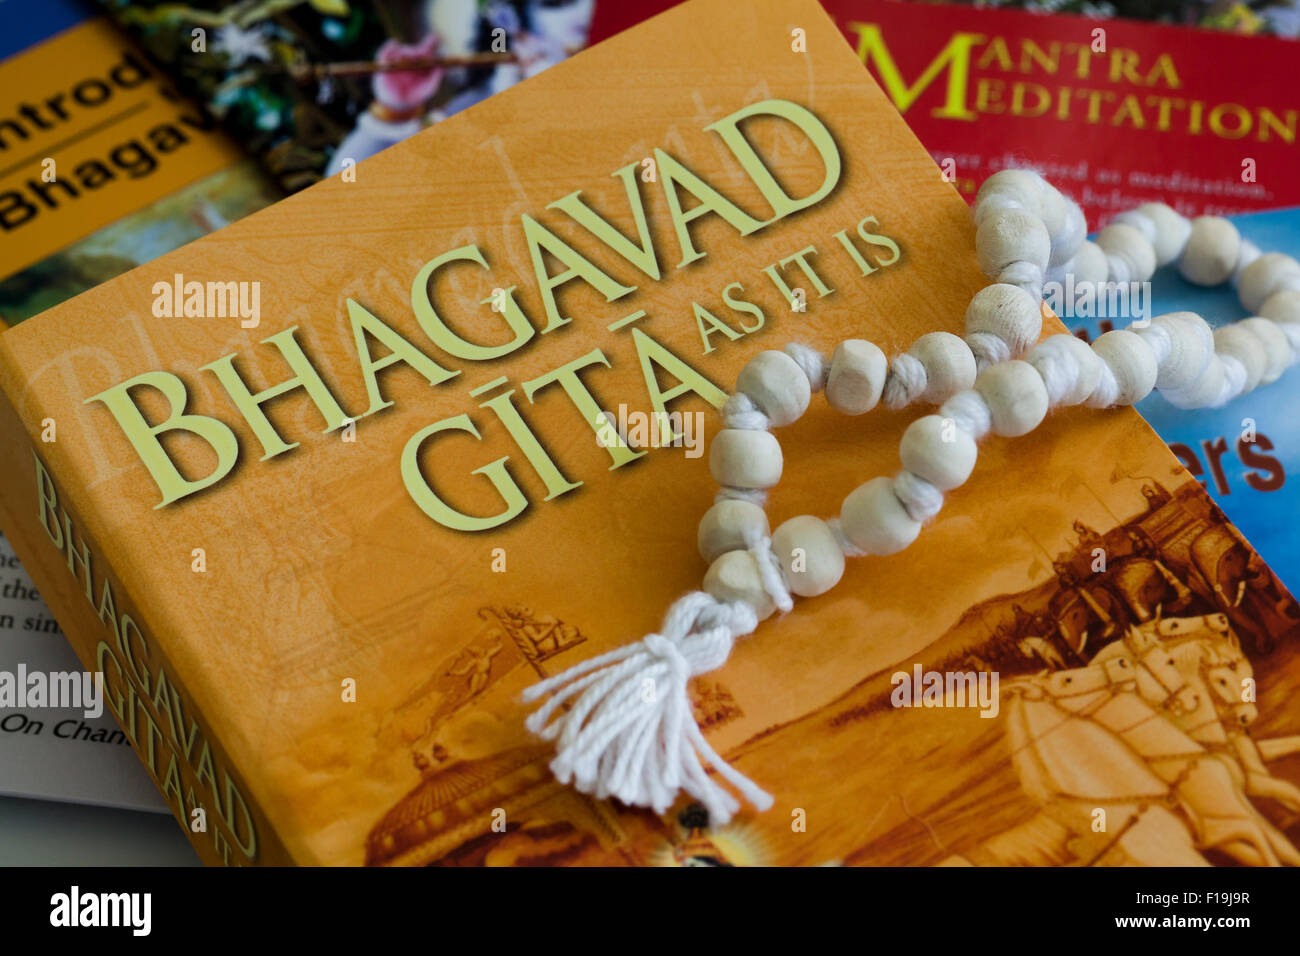 Krishna related books and meditation bead - Stock Image